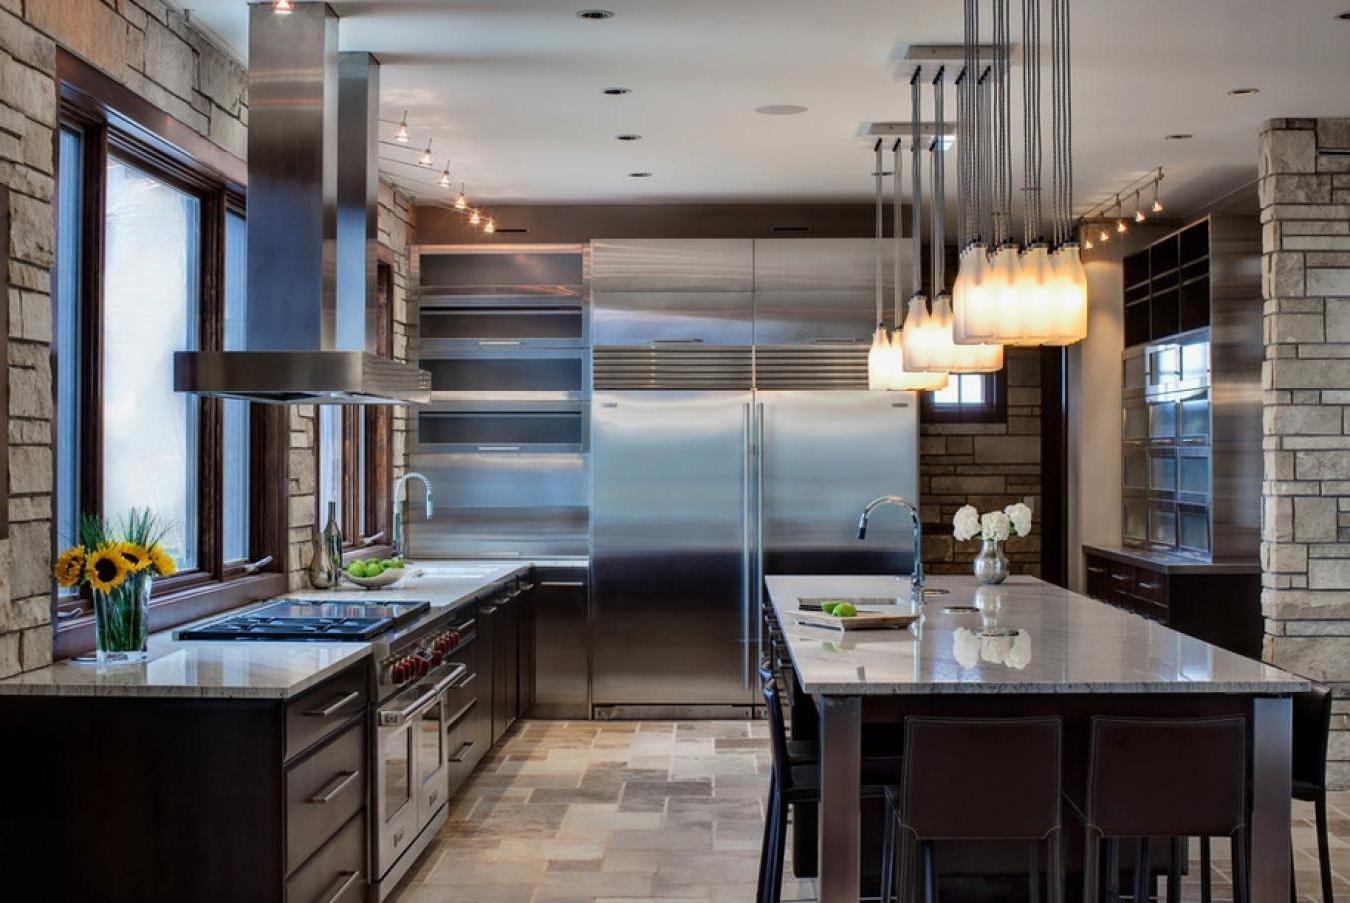 Modern-kitchen-interior-with-a-high-tech-cuisine-and-big-fridge-along-with-fine-dining-space-with-beautiful-hanging-lamps-decor